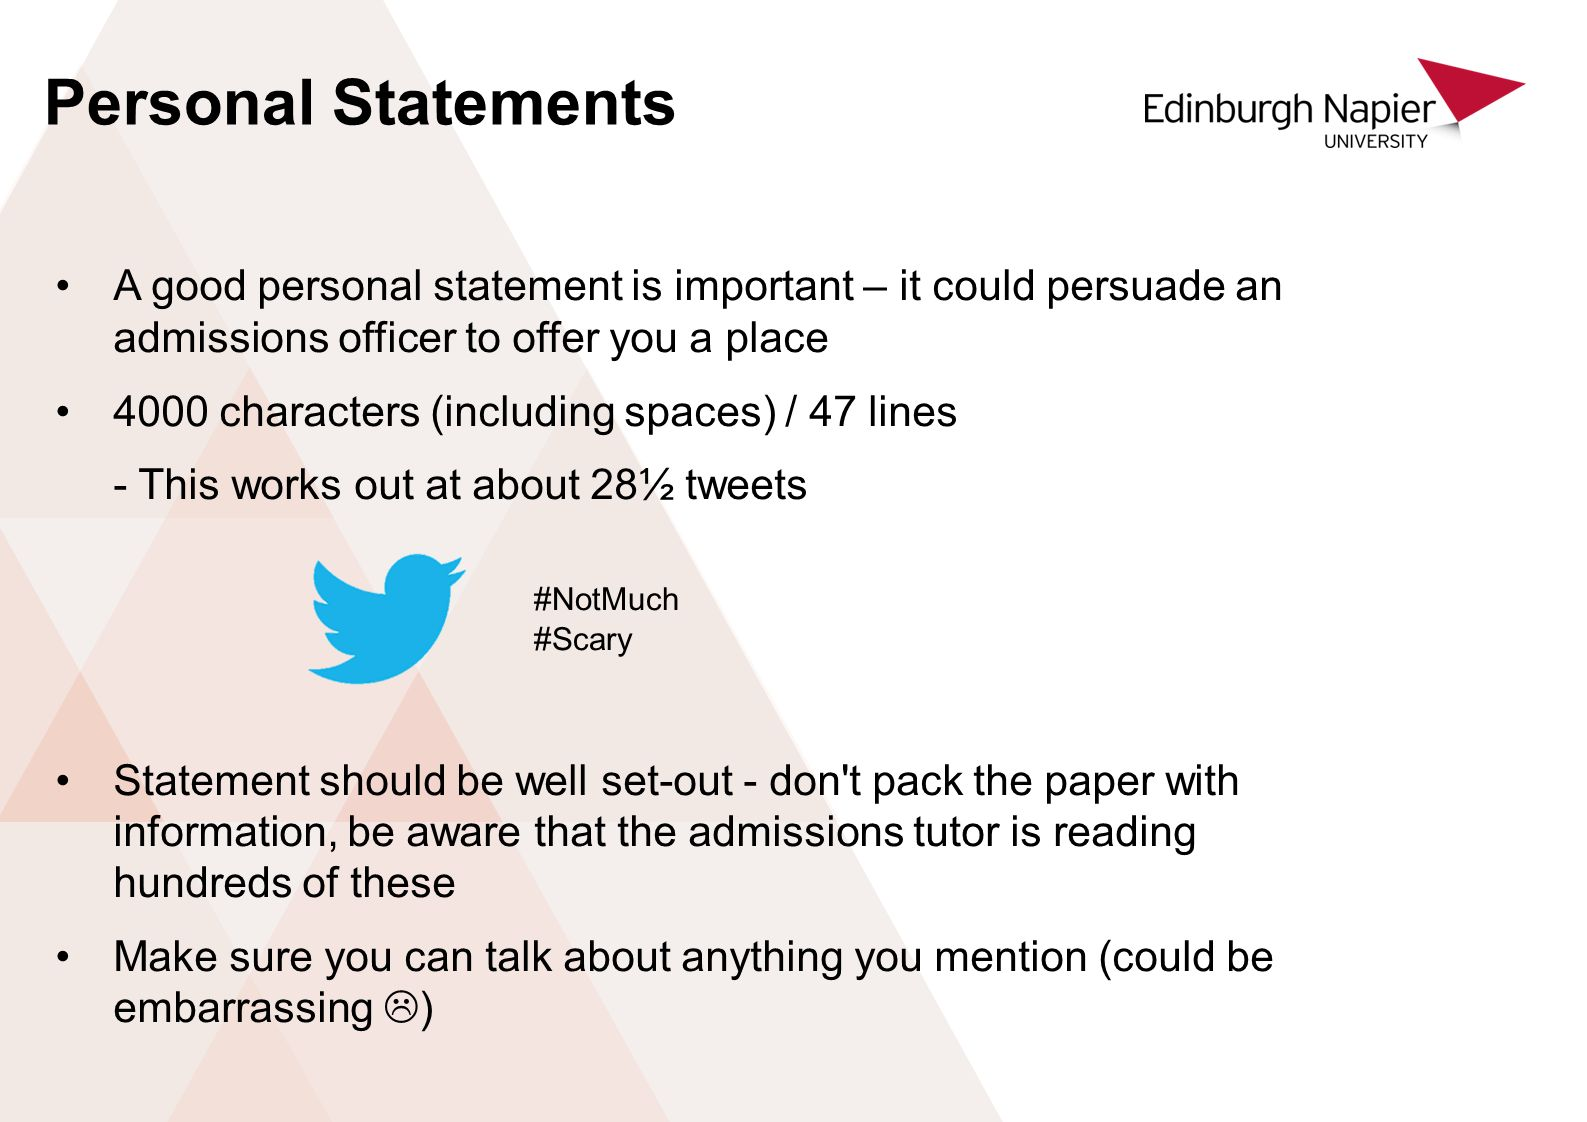 personal statement word limit uk The personal statement is occasionally a chance to make your application, but it's always a risk to break it keep in mind: it's only 1 page (literally—it should fit on no more than one page when printed from the eras application, which is somewhere around 750-800 words on the longer end 600-650 is a better goal.